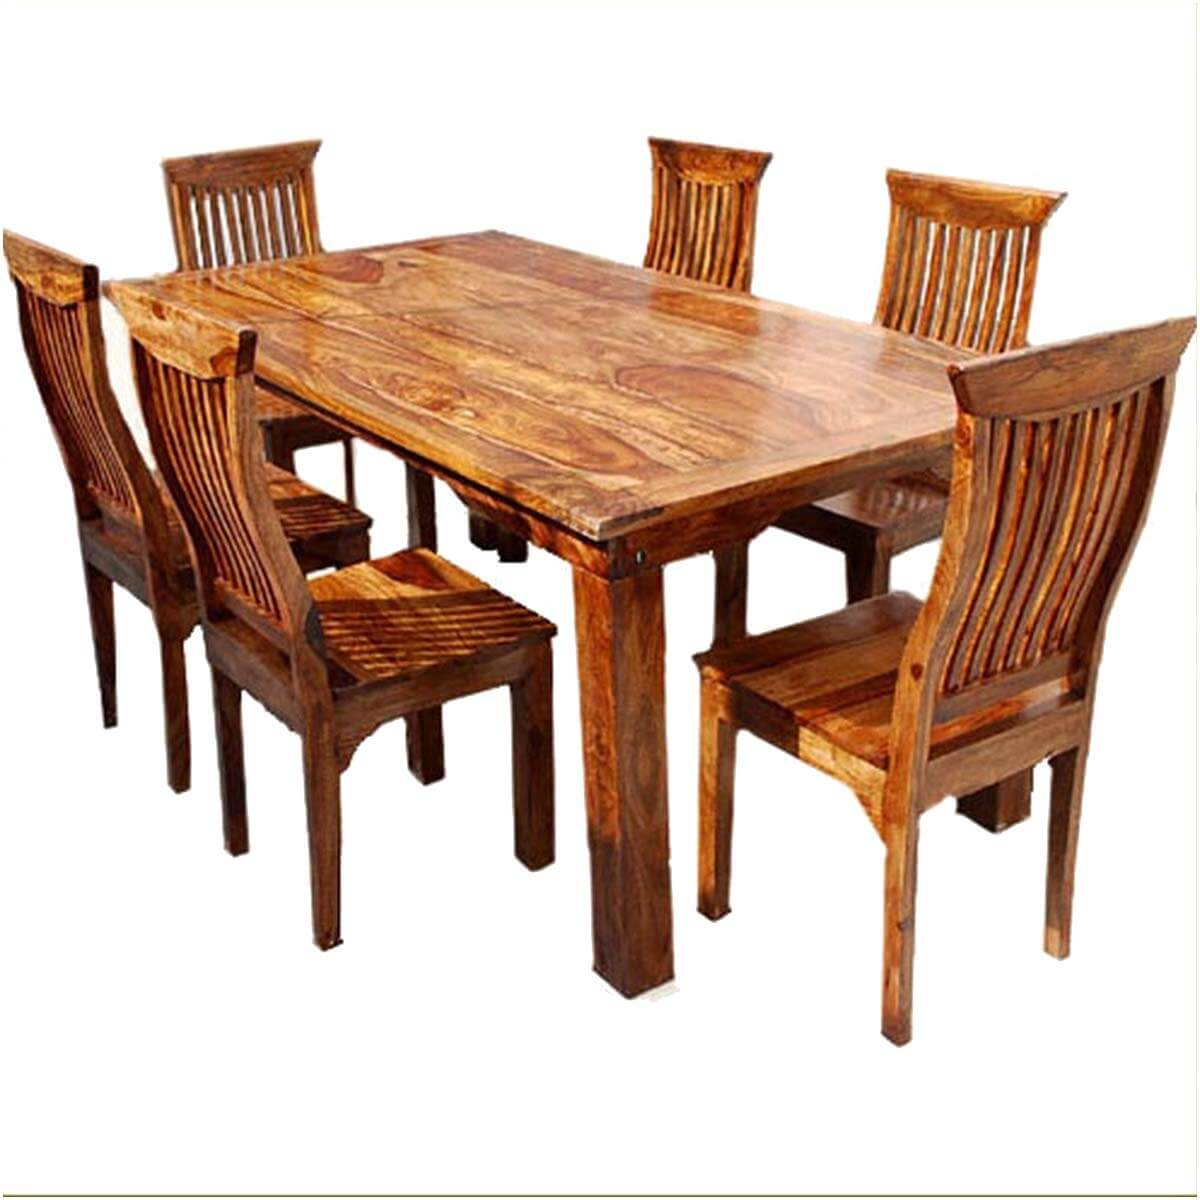 Wood Dinette Tables ~ Dallas ranch solid wood rustic dining table chairs hutch set